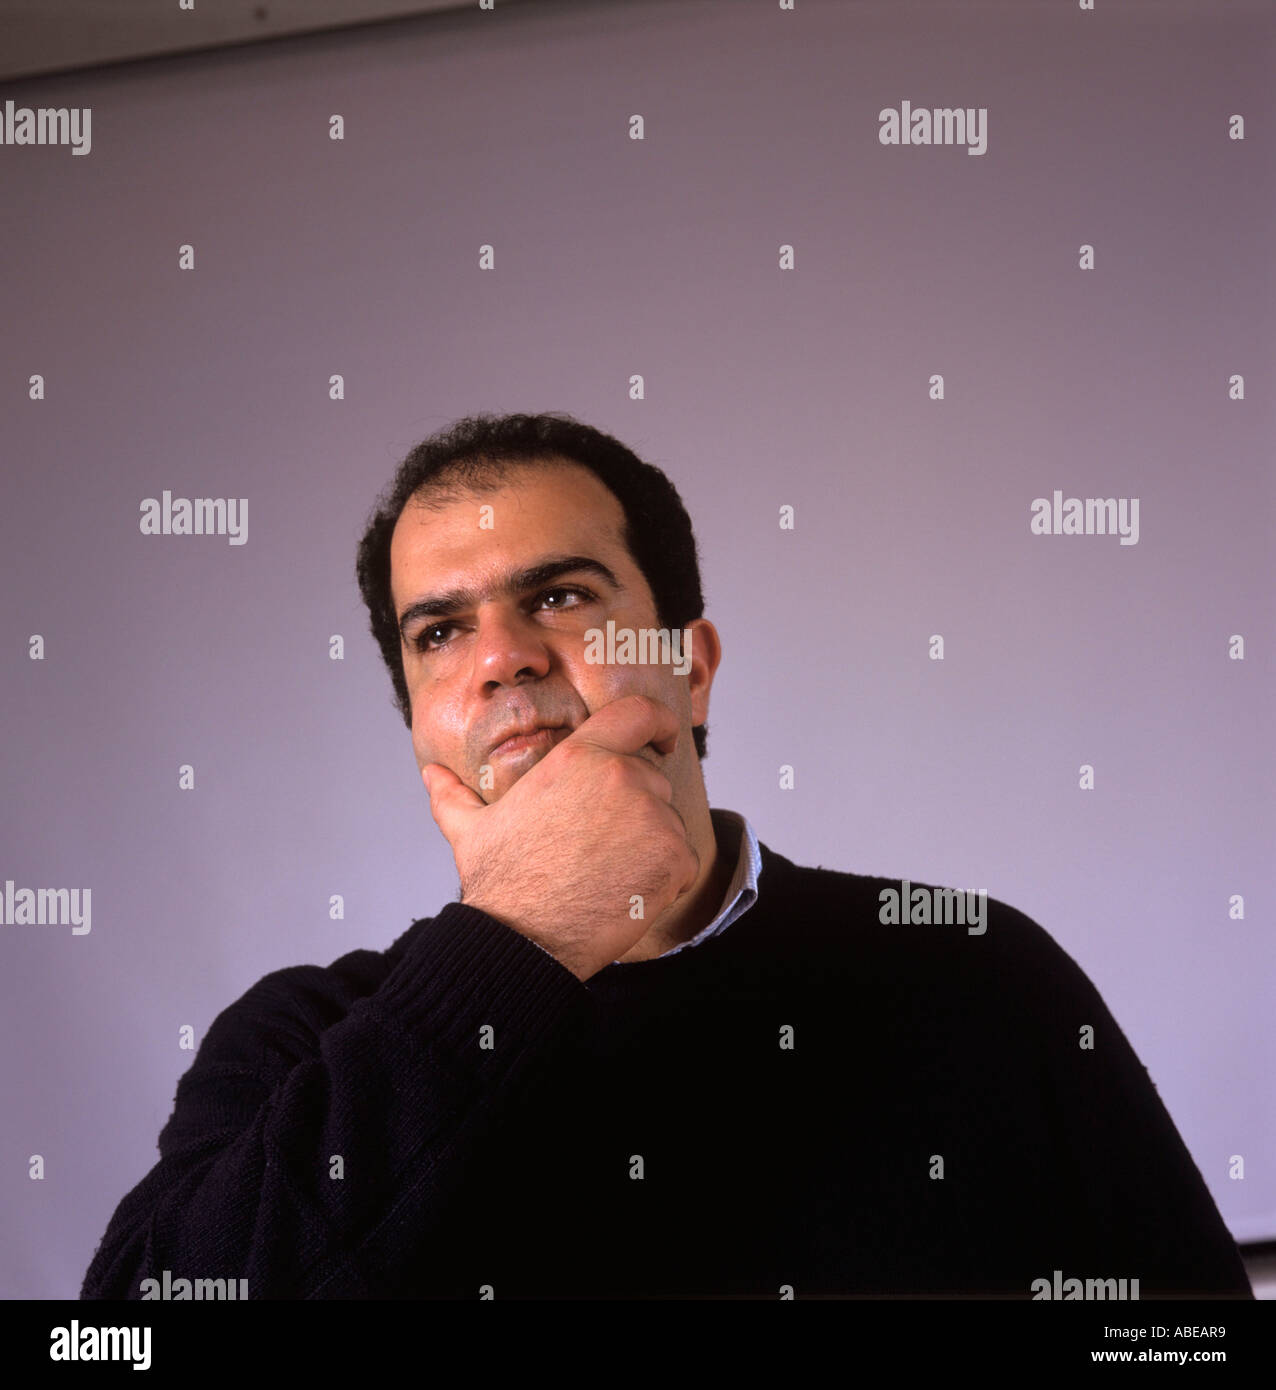 Stelios Haji Ioannou founder and CEO of EasyJet at the EasyJet Headquarters in London January 2004 - Stock Image